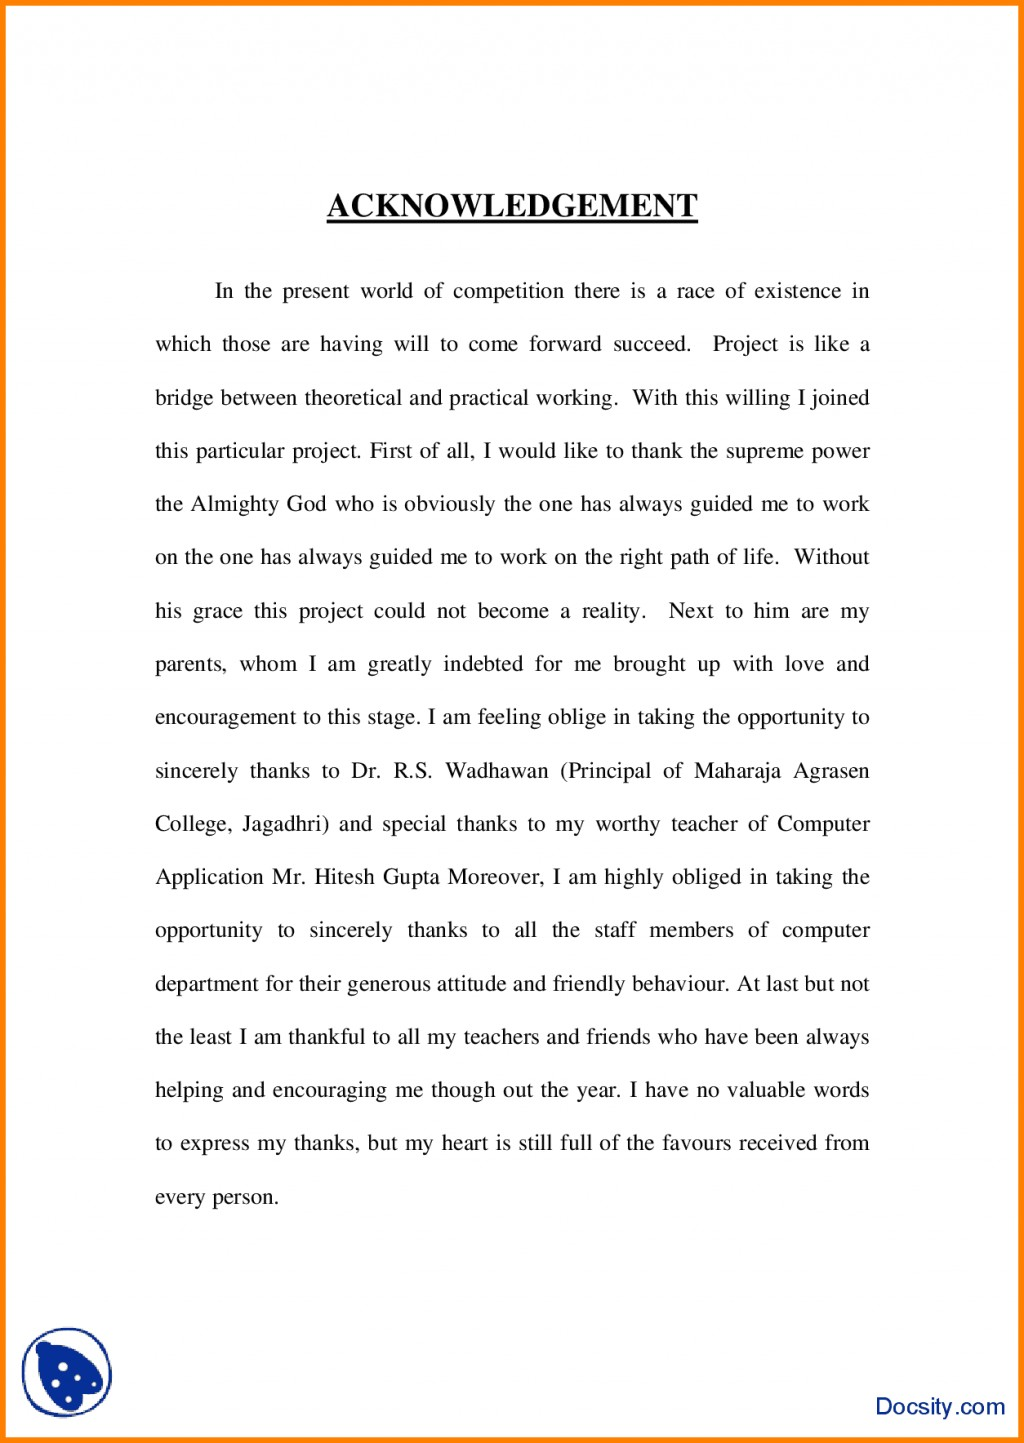 001 Acknowledgement For Research Paper Doc Staggering In A Large